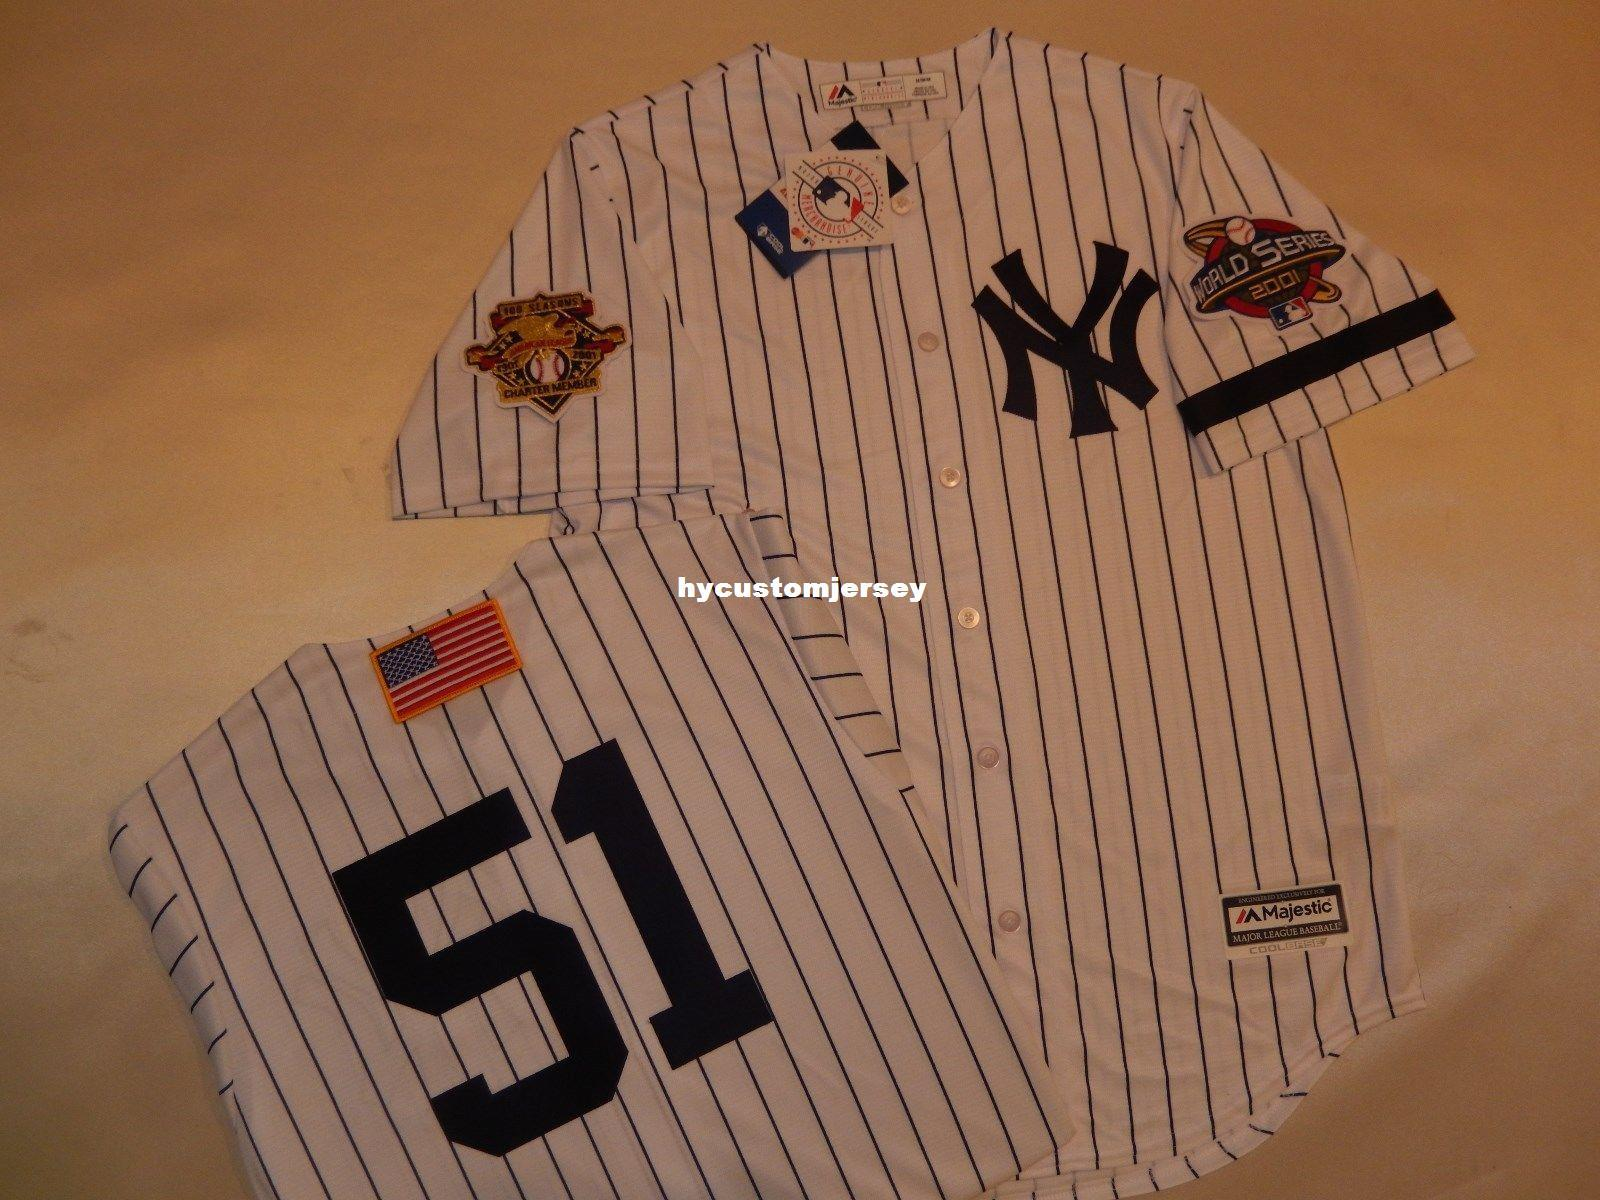 buy online 2a7a8 e9fdb Cheap custom New York #51 BERNIE WILLIAMS 2001 WORLD SERIES Baseball Jersey  WHITE Mens stitched jerseys Big And Tall SIZE XS-6XL For sale